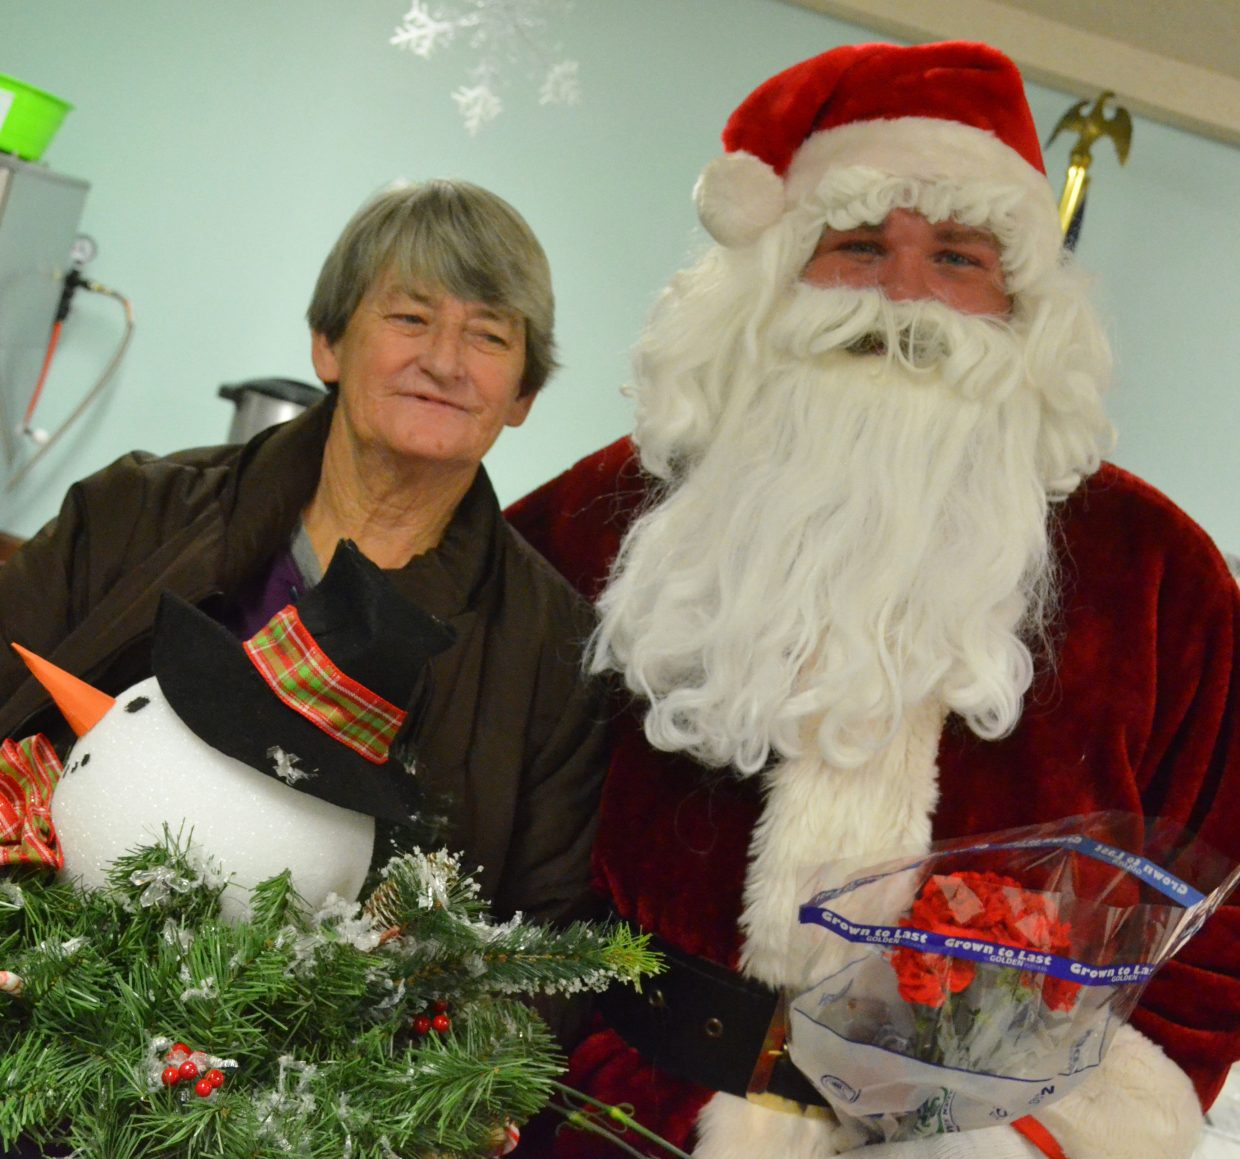 Lisa Friend is joined by Santa Claus during the Sunset Meadows Christmas party Wednesday.